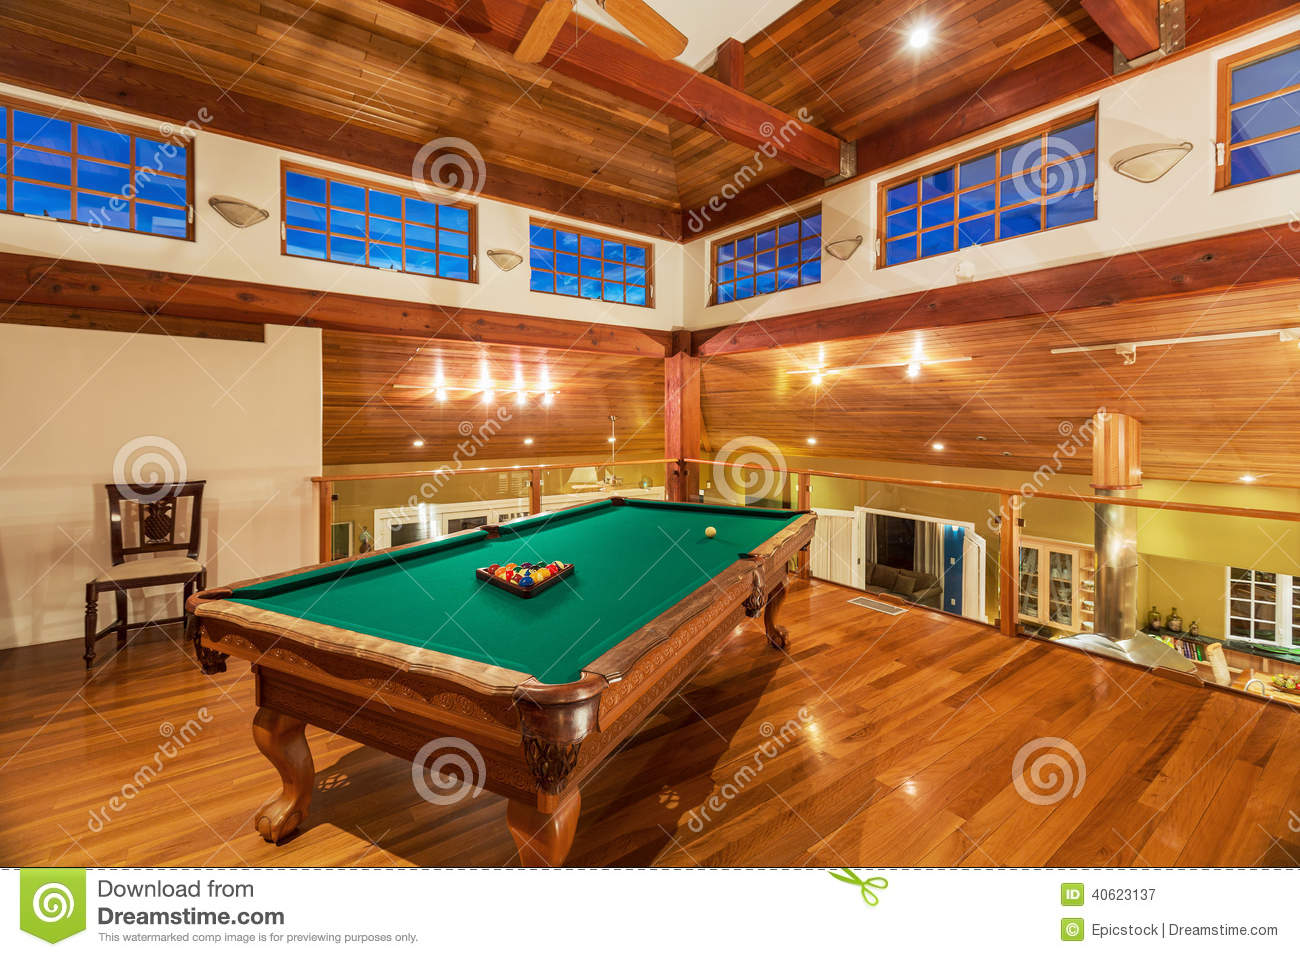 Table de billard dans la maison de luxe image stock - Table de sciage maison ...